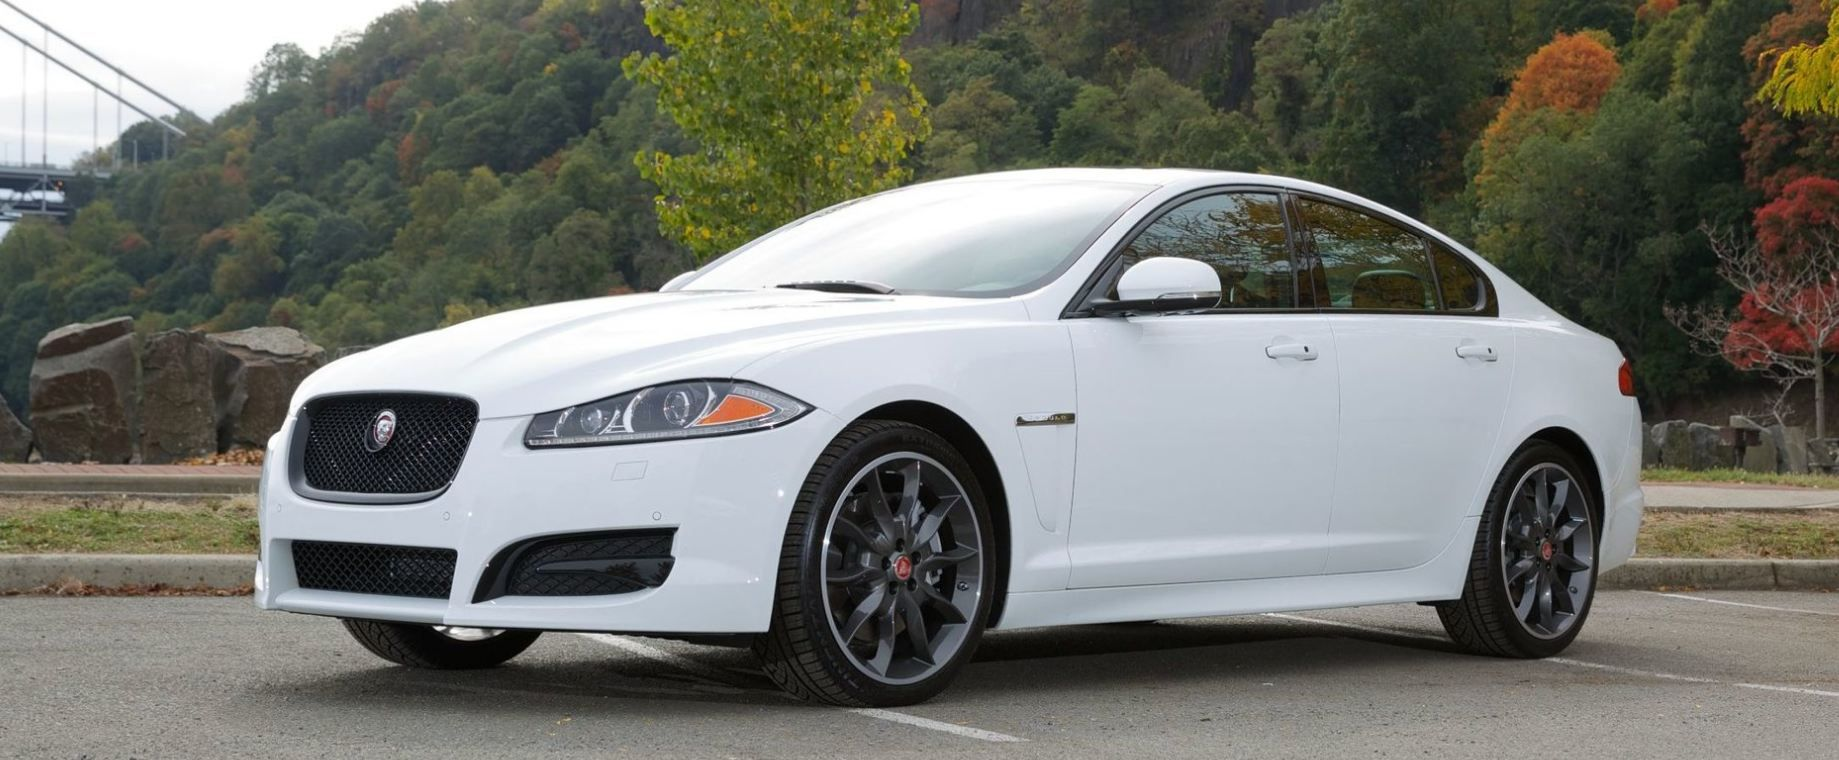 2015 Jaguar XF Coupe Review